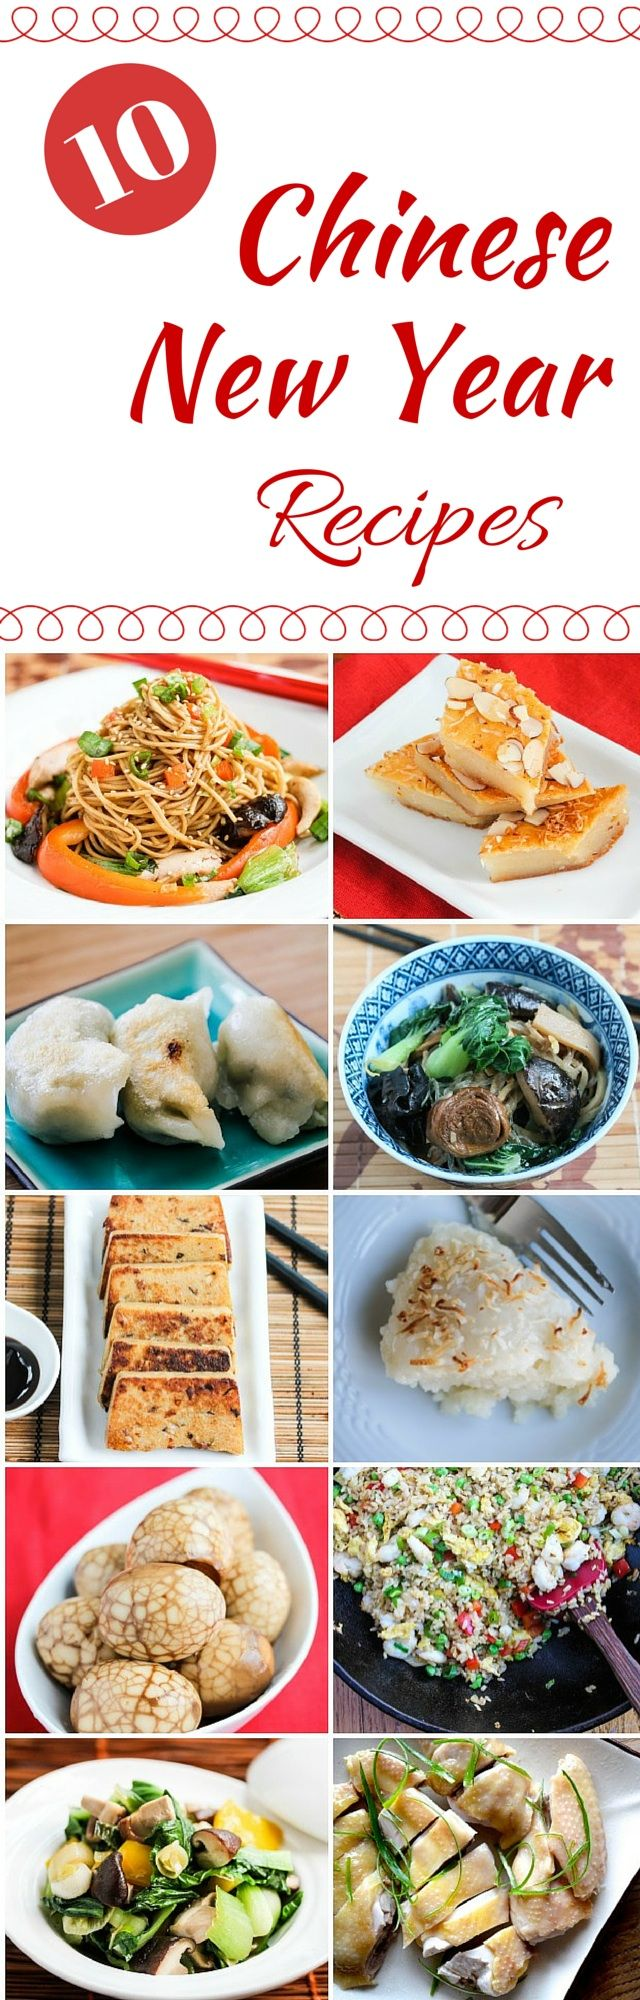 10 Chinese New Year Recipes - Celebrate Chinese New Year with these symbolic foods for a prosperity, longevity, unity, fertility, luck, happiness, and good fortune ~ http://jeanetteshealthyliving.com #fcpinpartners